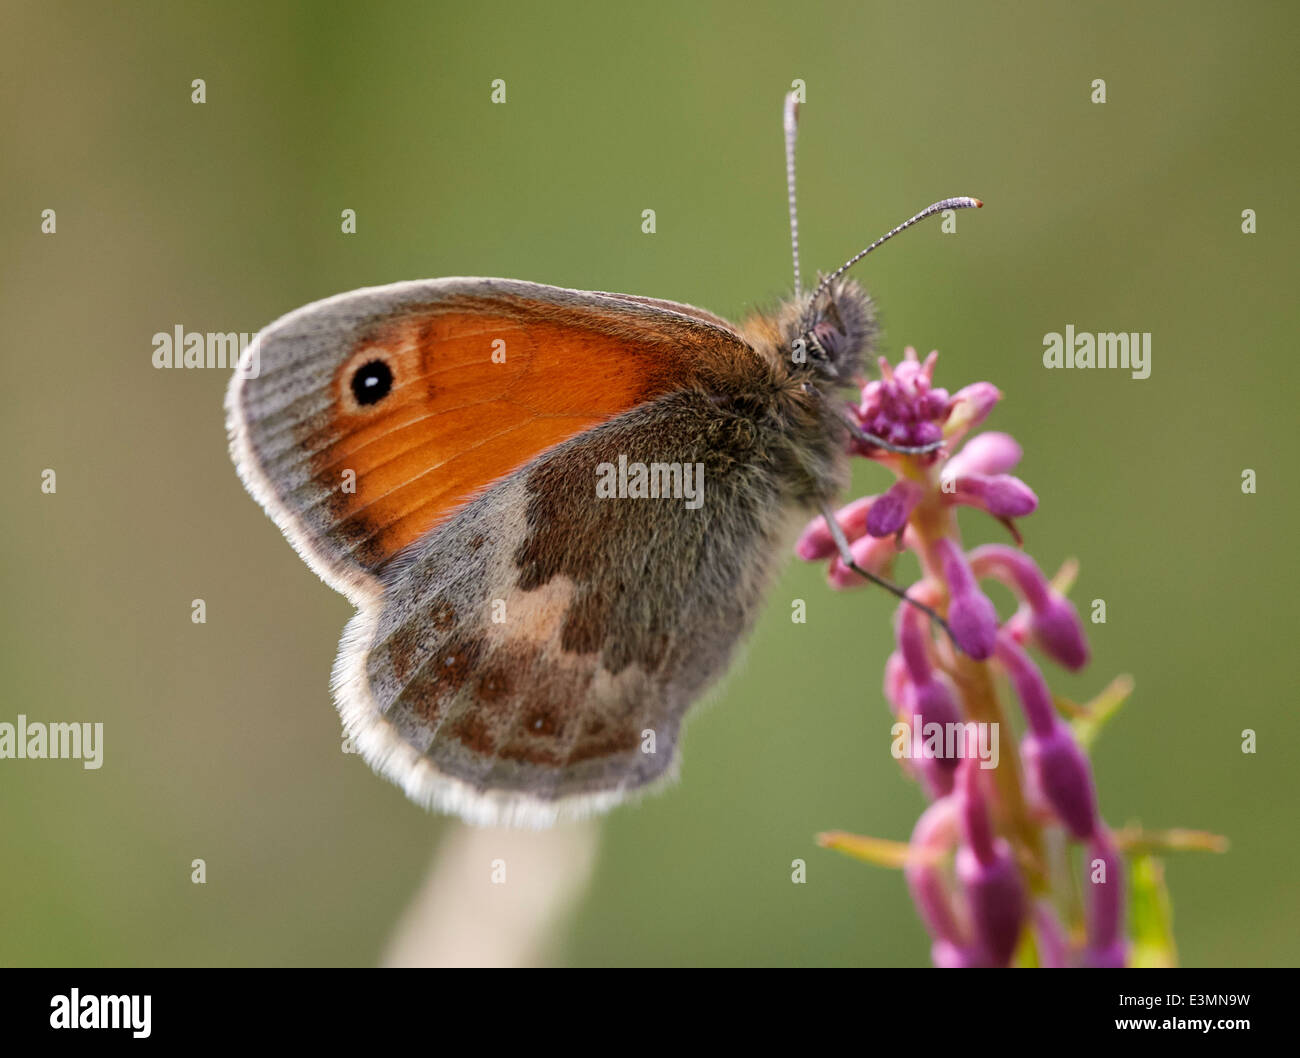 Small Heath butterfly. Mitcham Common, Surrey, England. - Stock Image